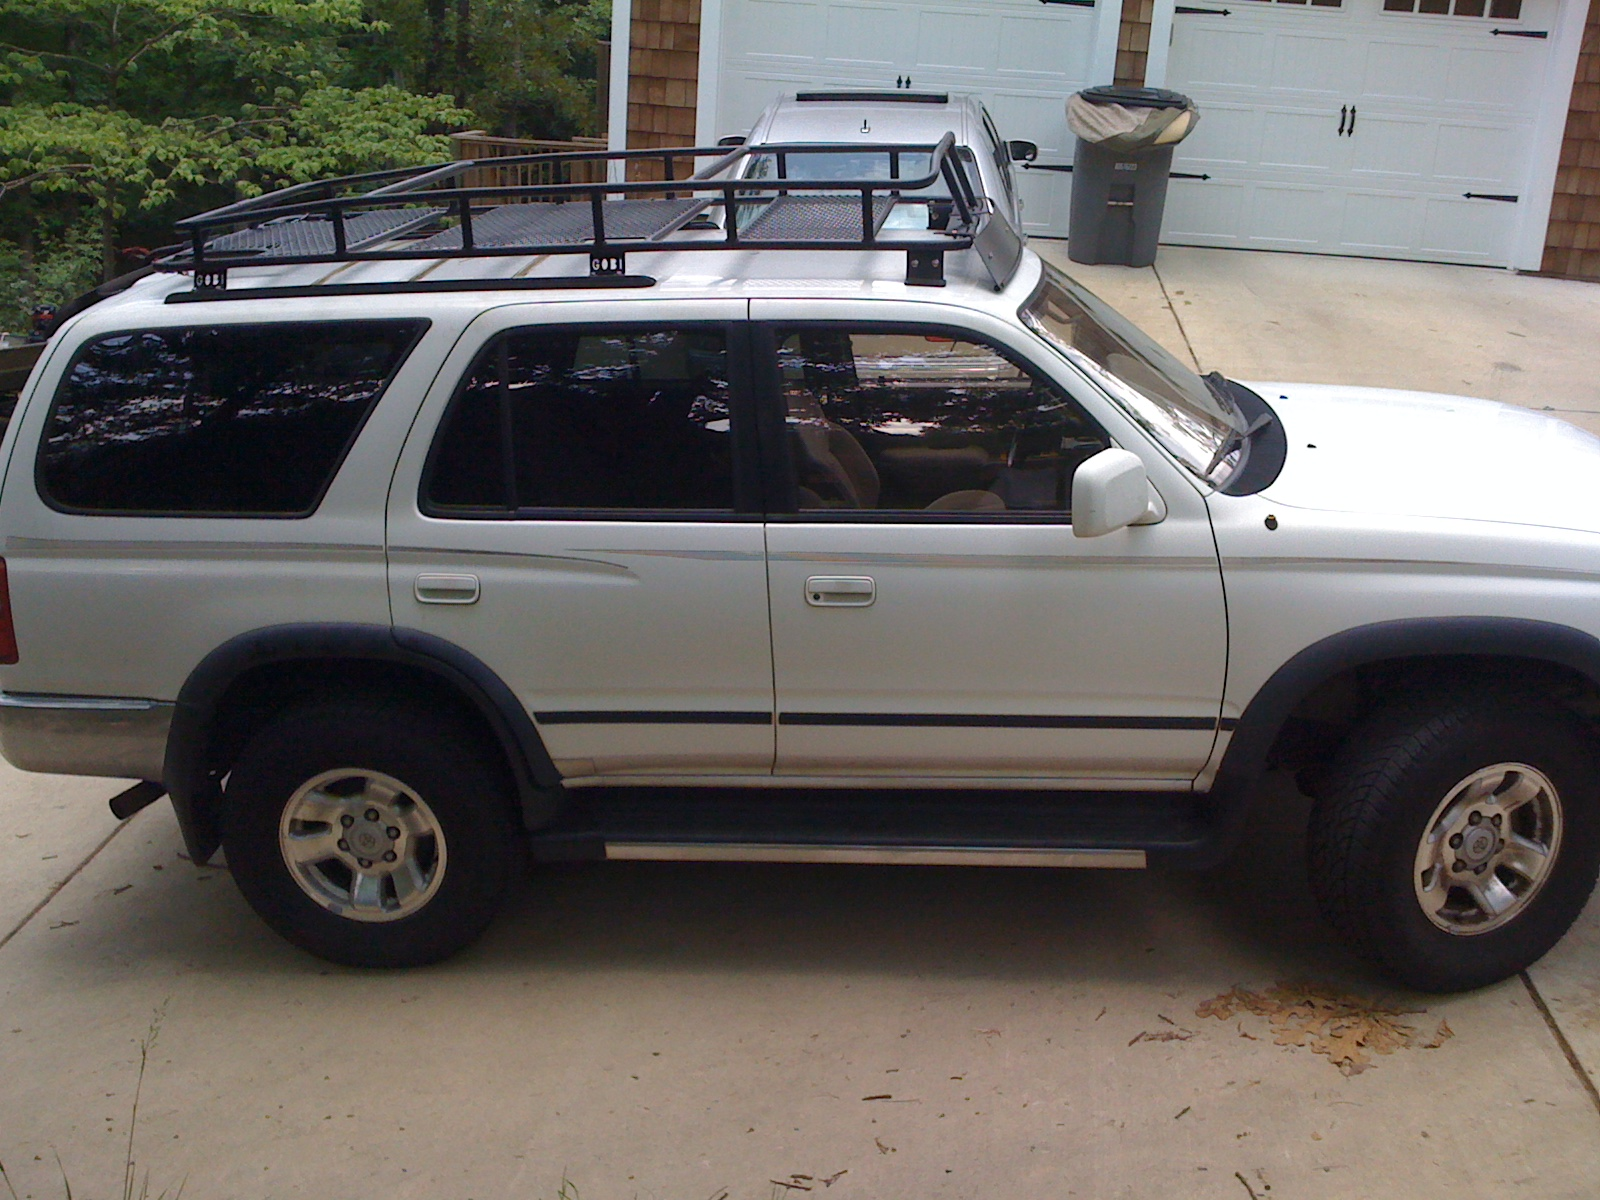 Toyota Runner Dr Sr Wd Suv Pic on 1987 Toyota Tercel 4wd